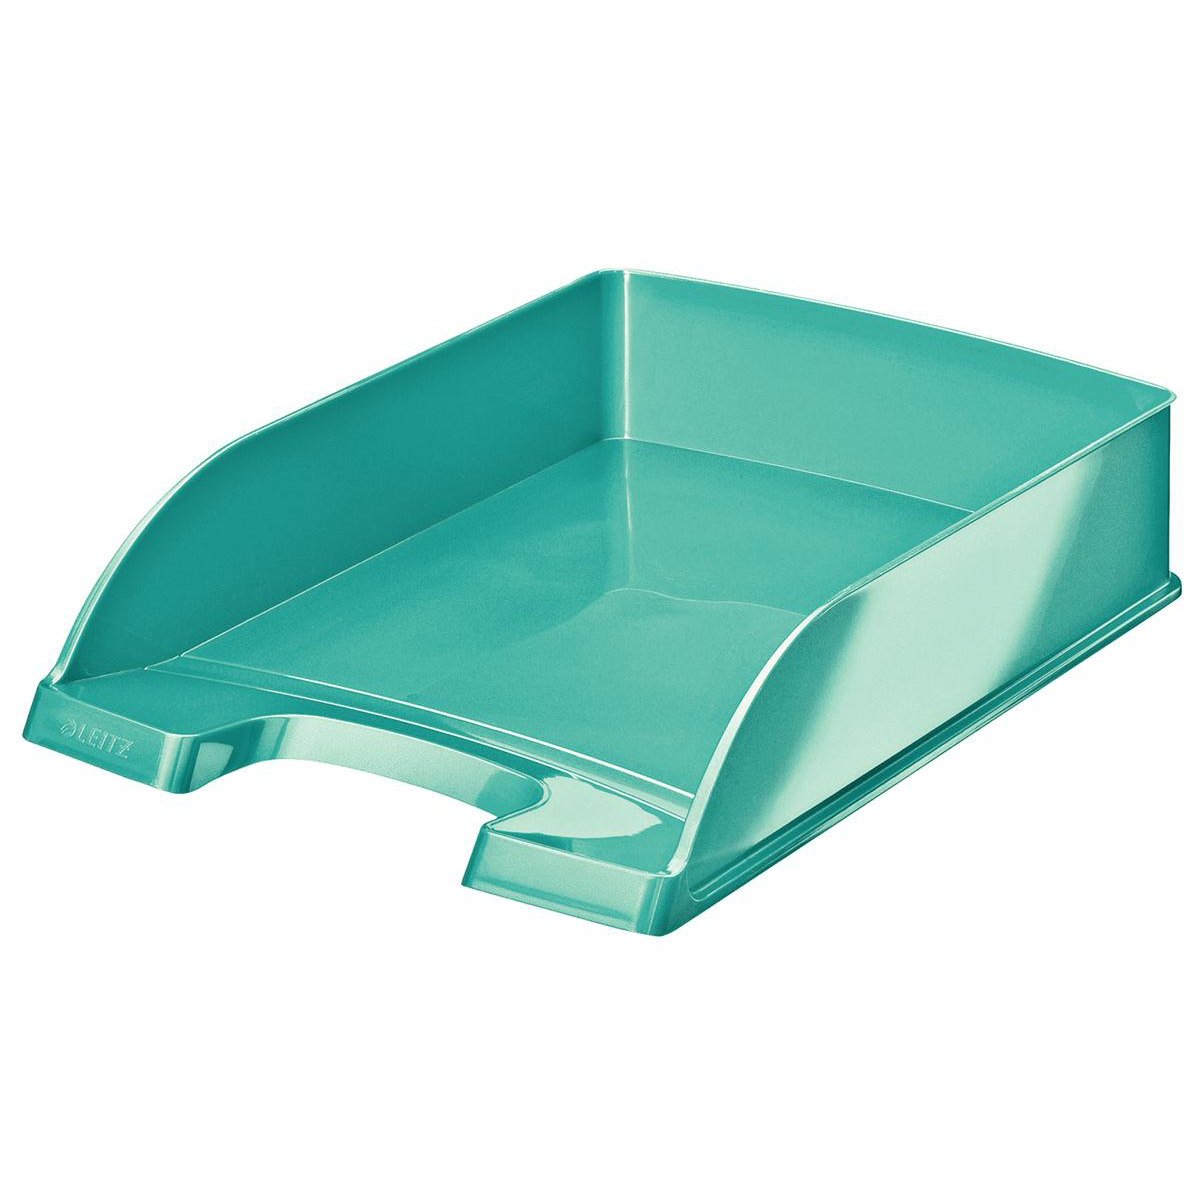 Letter Trays Leitz WOW Letter Tray Ice Blue Ref 52260051